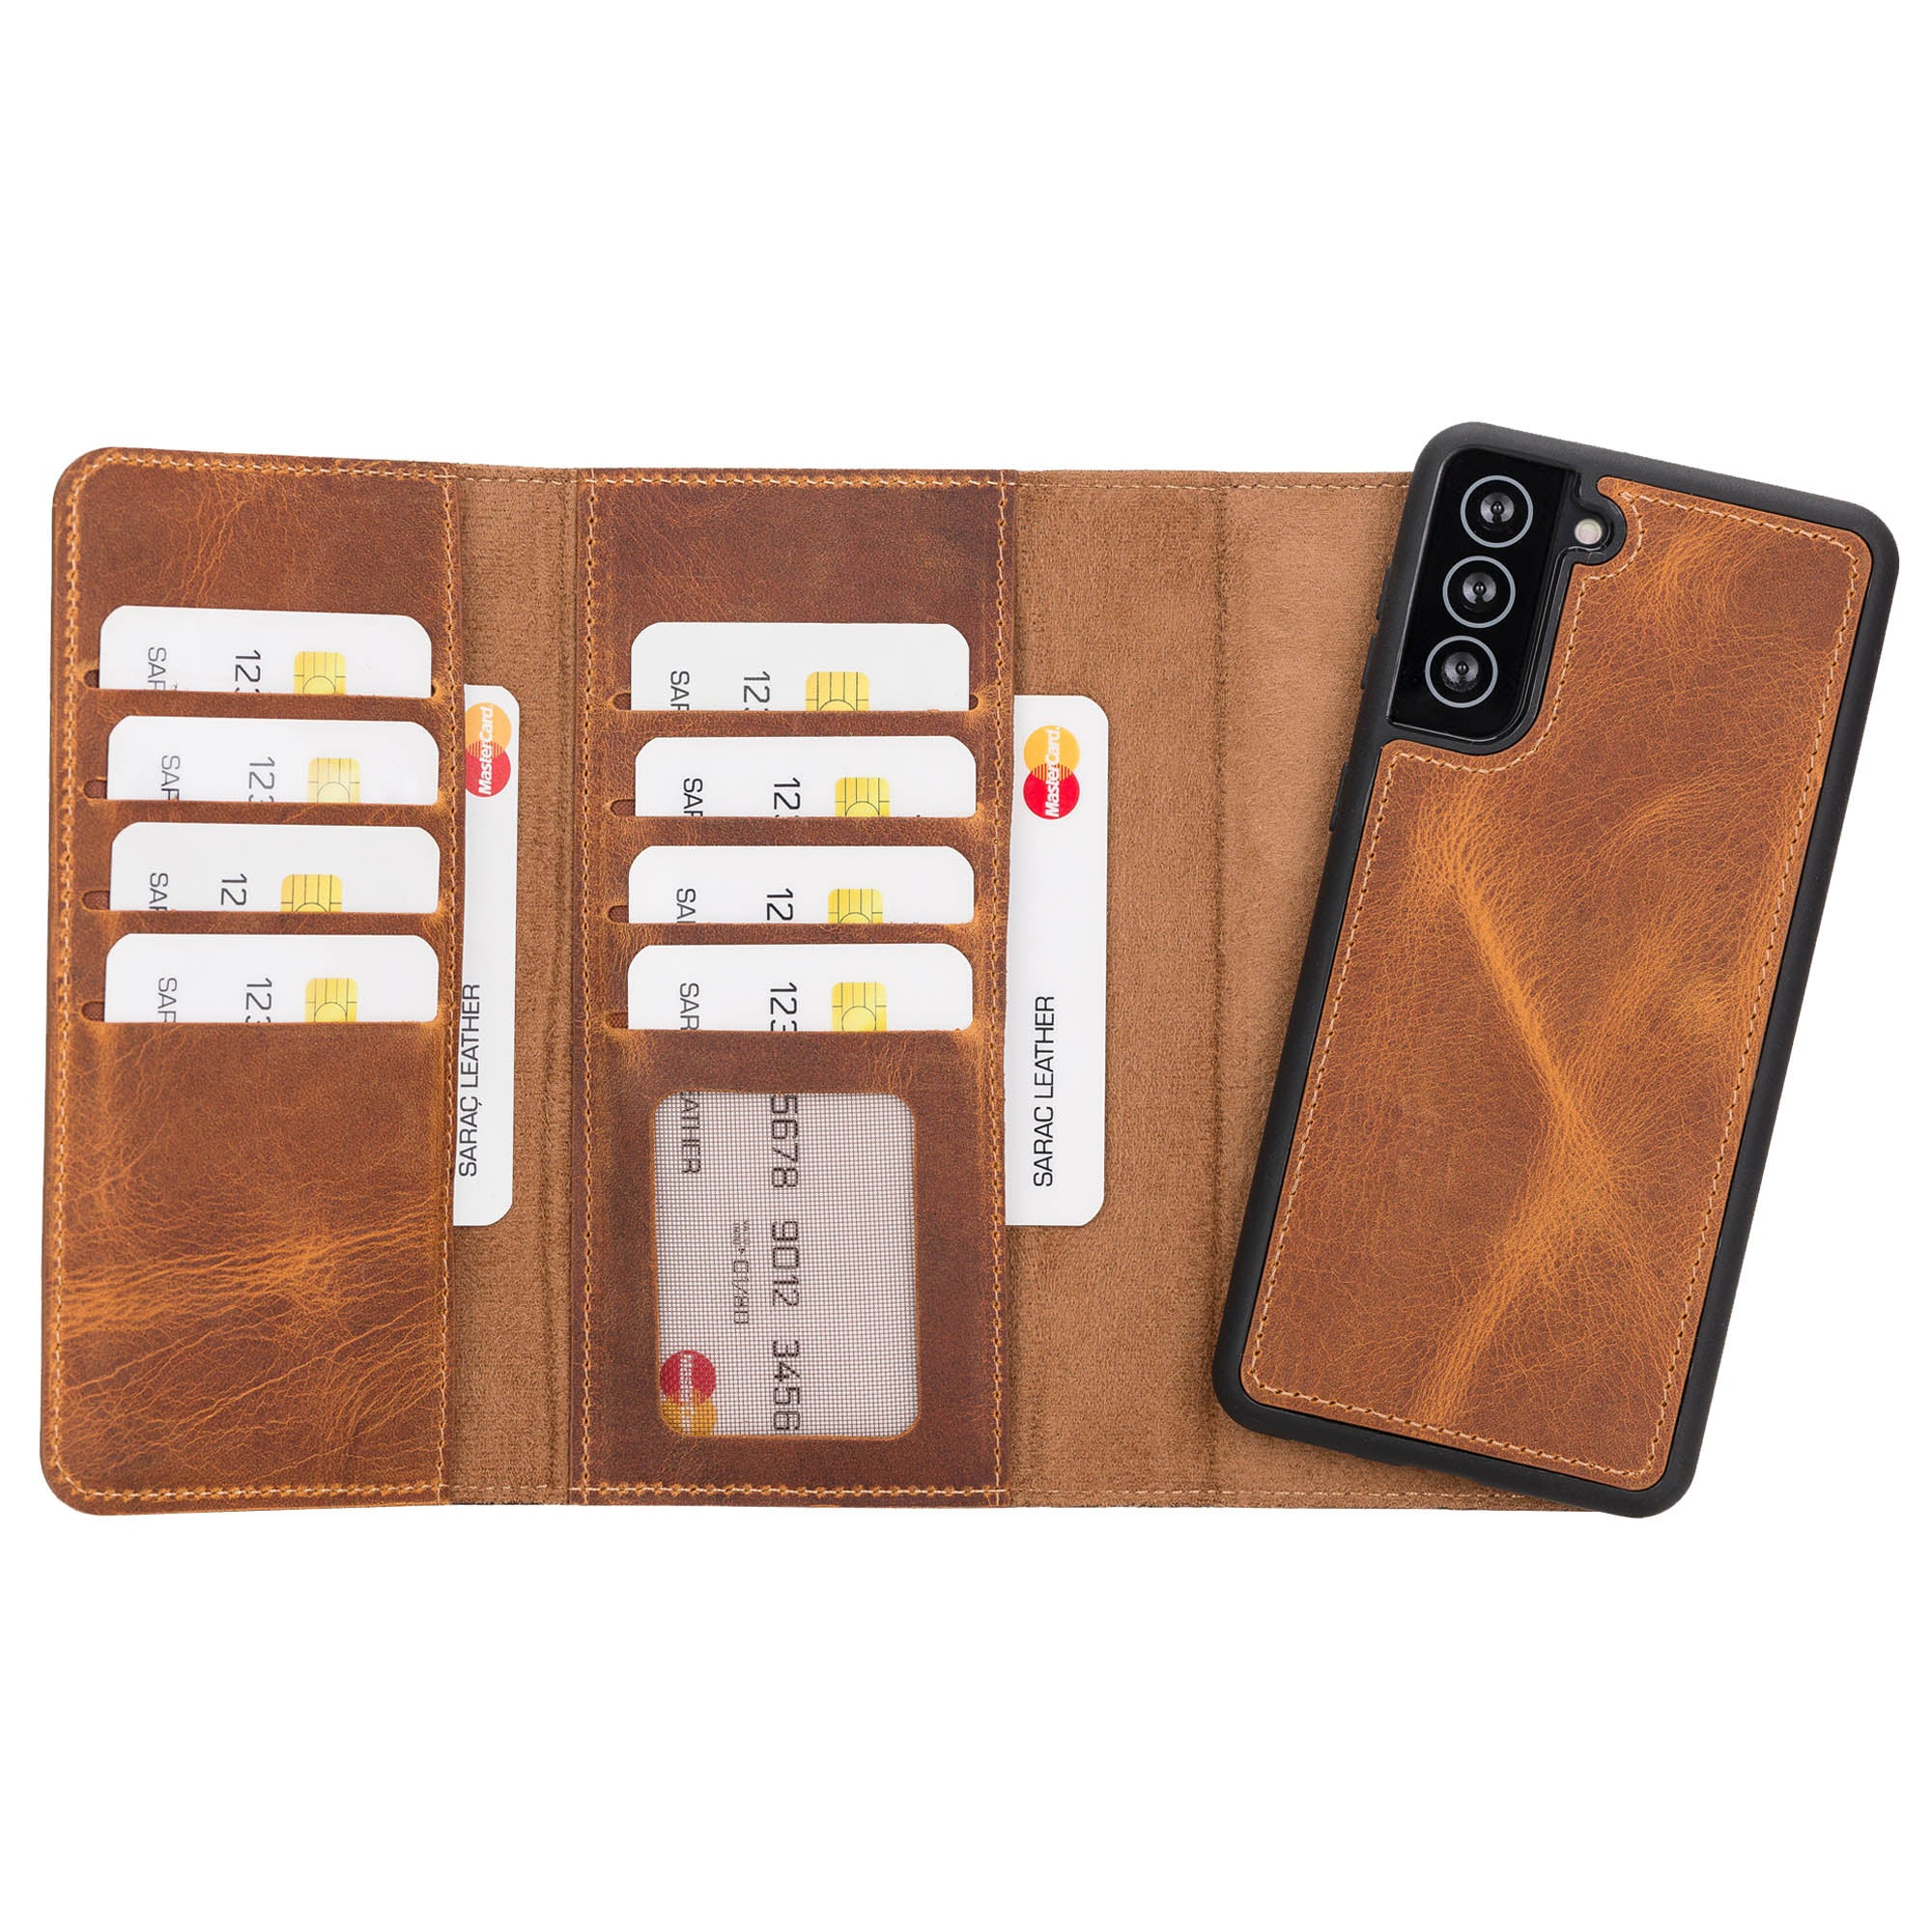 "Santa Magnetic Detachable Leather Wallet Case for Samsung Galaxy S21 Plus 5G (6.7"") - TAN - saracleather"